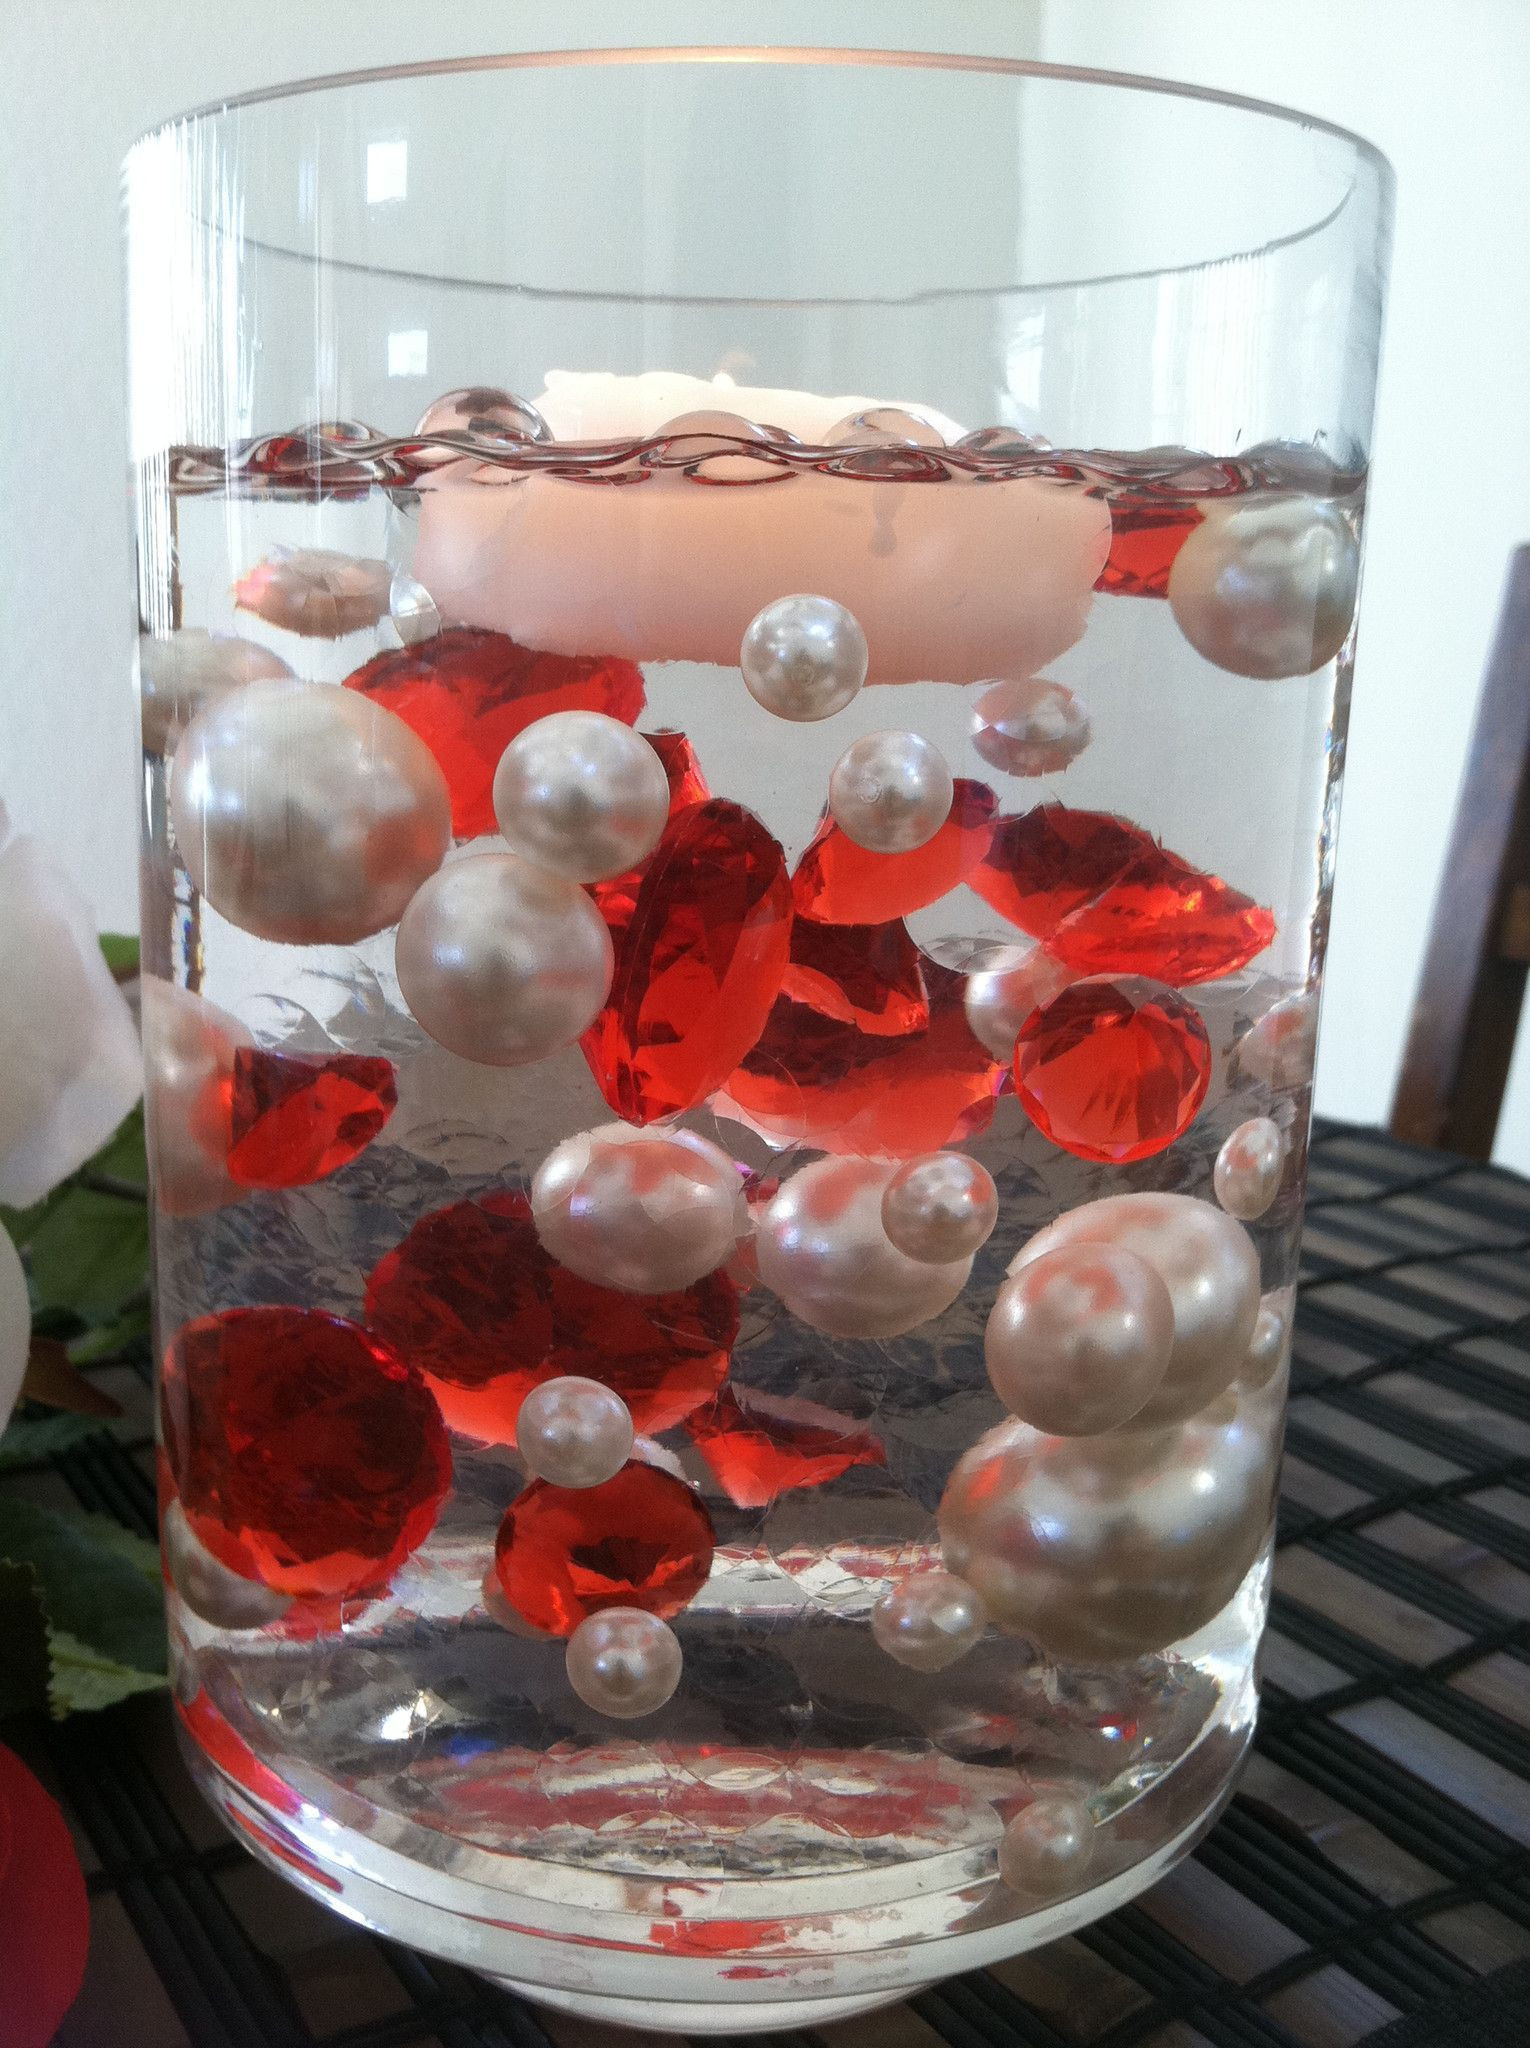 Water Beads for Vases Of Floating Diamonds and Pearl Centerpiece Vase Filler Gems Table with Floating Diamonds and Pearl Centerpiece Vase Filler Gems Table Scatters